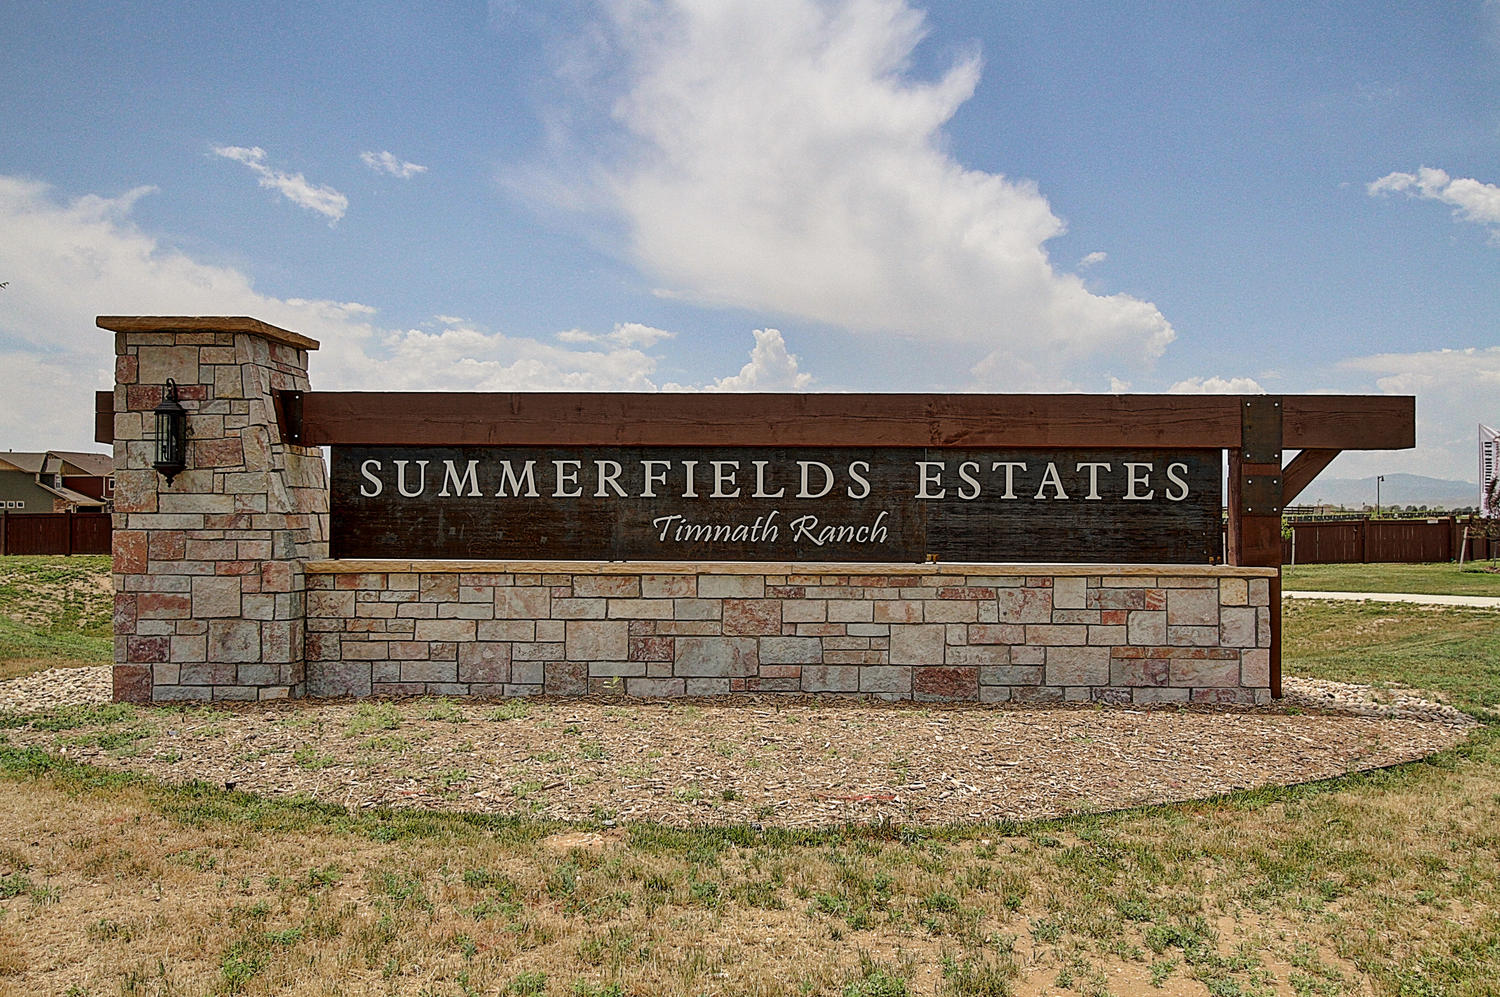 Summerfields Estates